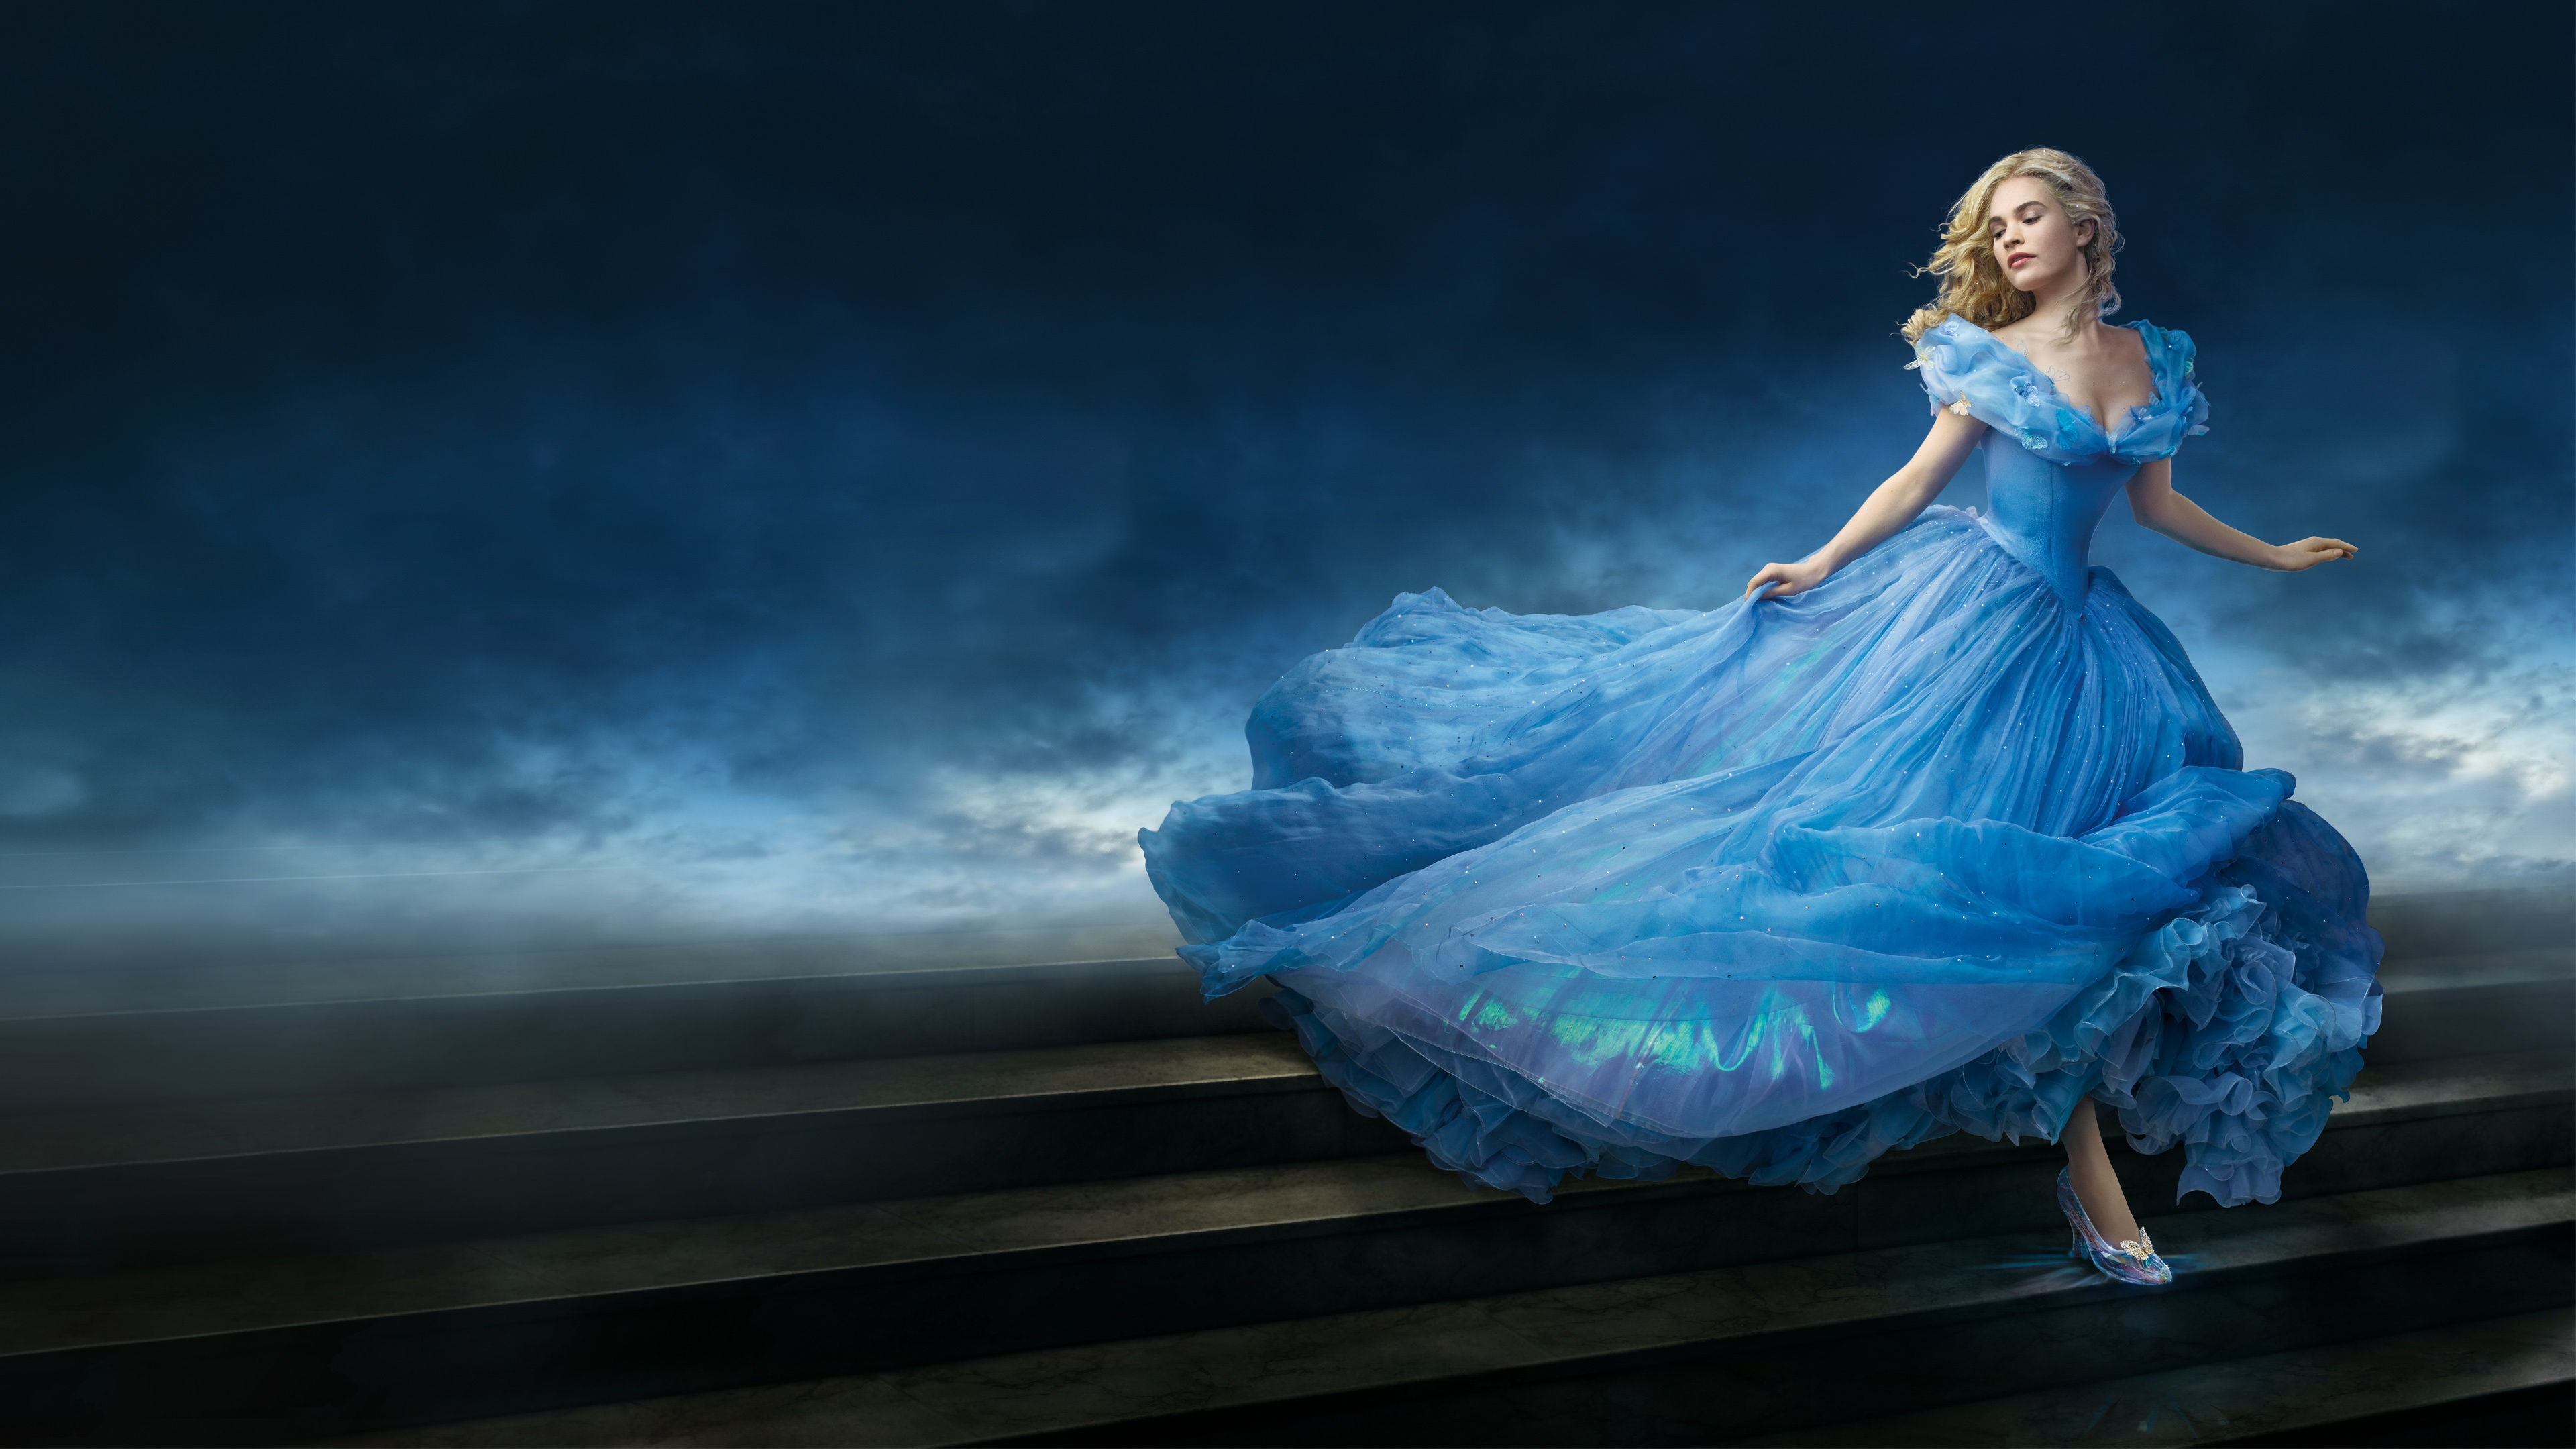 51 Cinderella 2015 HD Wallpapers Background Images   Wallpaper 3840x2160